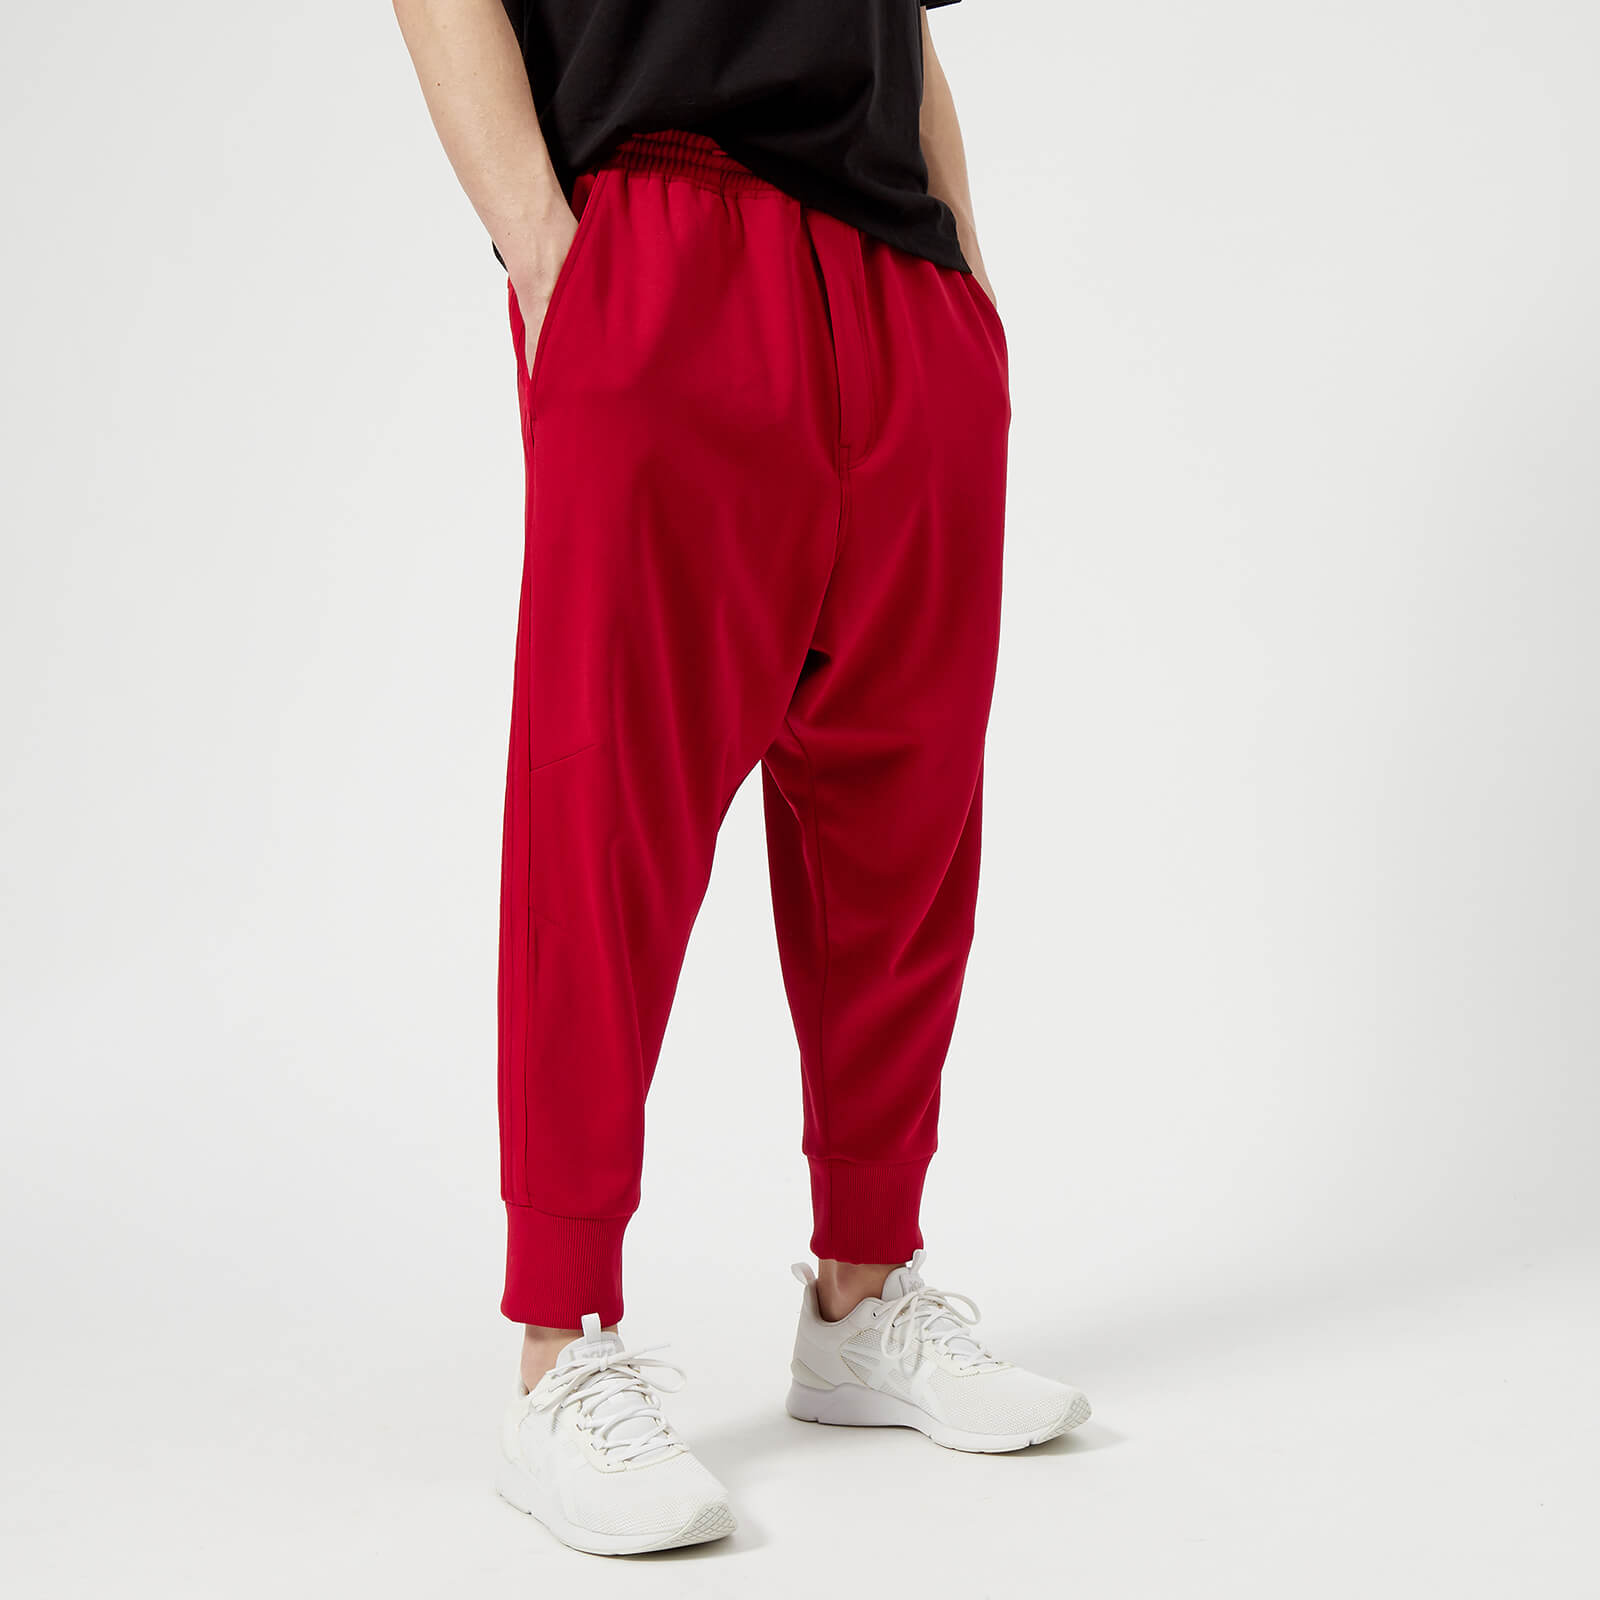 f9e531a41 Y-3 Men s 3 Stripe Track Pants - Chili Pepper Undyed - Free UK ...